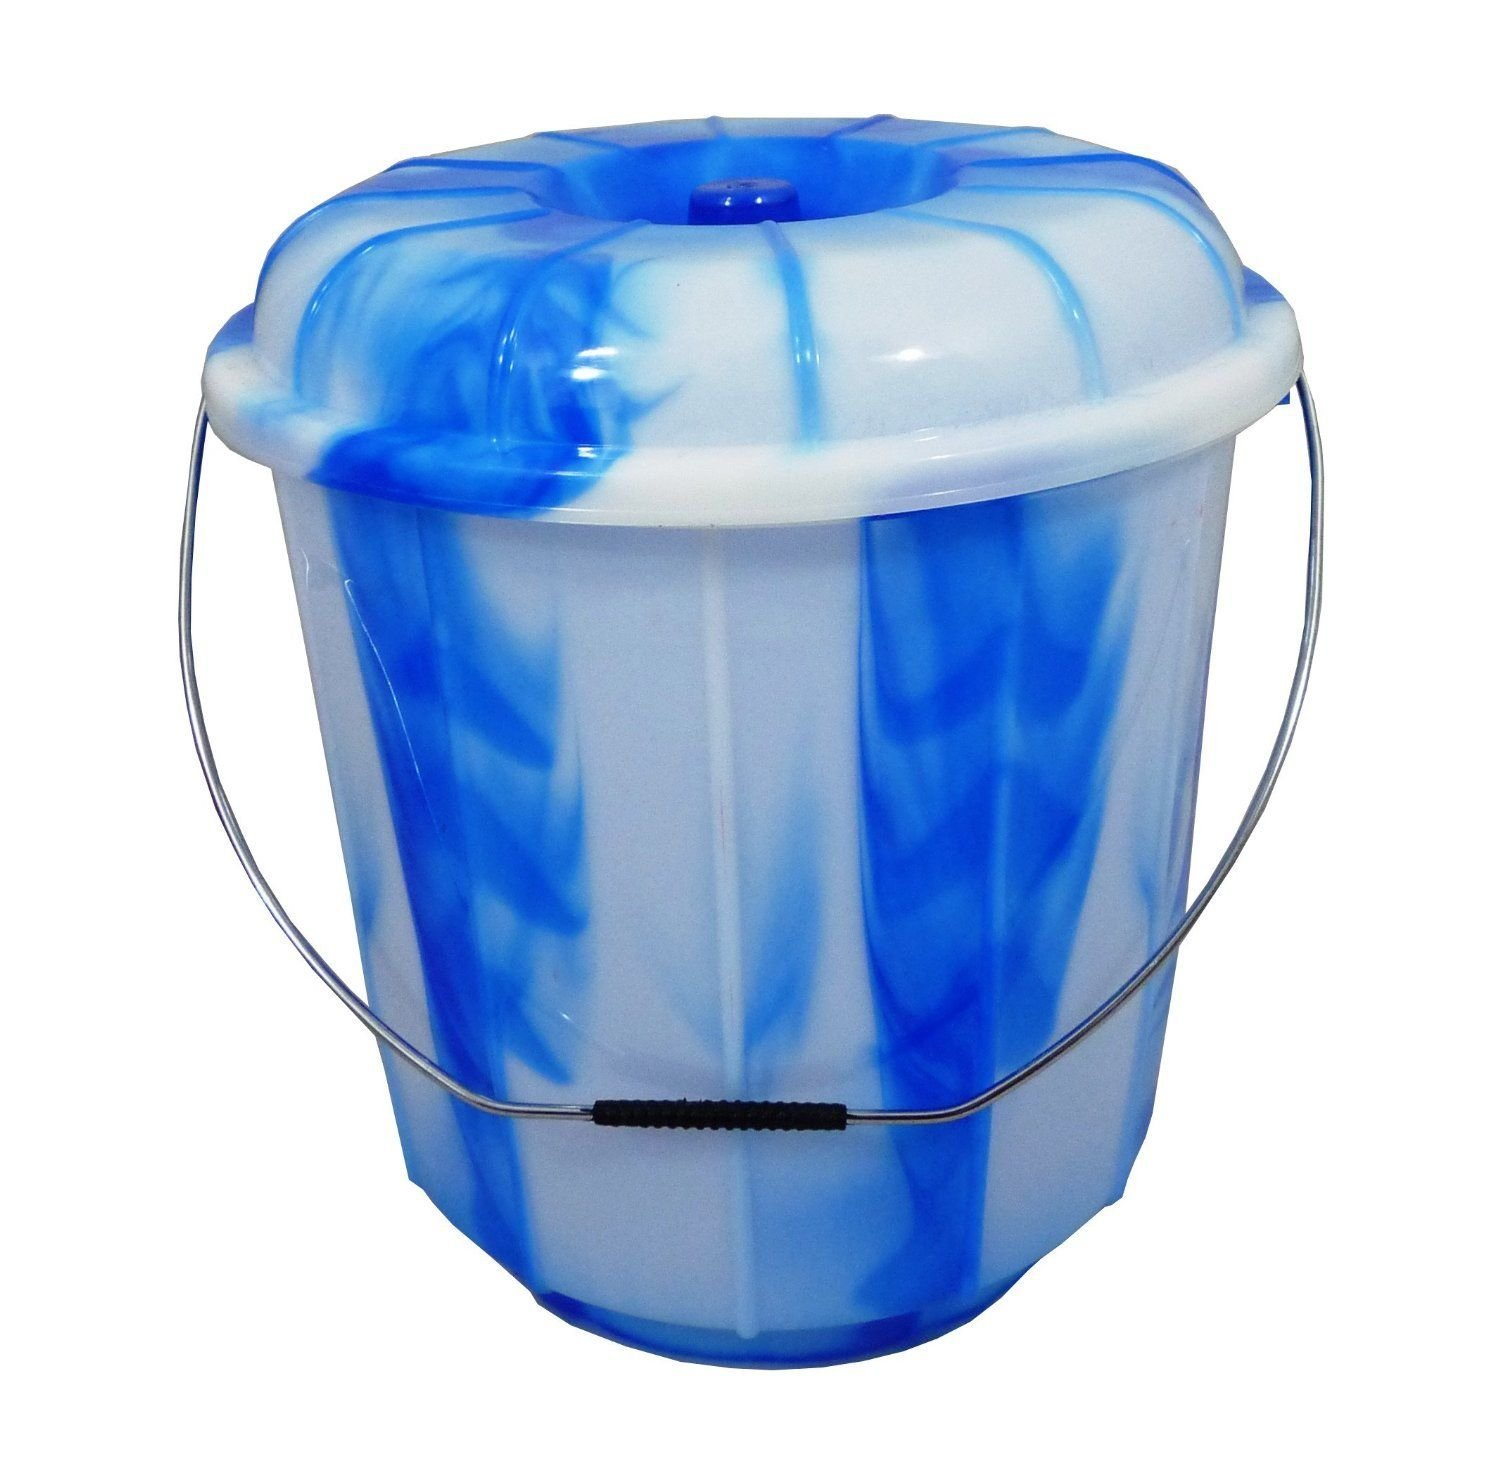 3L/7L/5L/13L/16L/20L/25L Lidded Plastic Bucket With Carry Handle Ideal for Storage/Container/Tub/Caddy/Grain/Flour/Seed/Animal Feed (3 Litre, Blue) S&MC Gardenware